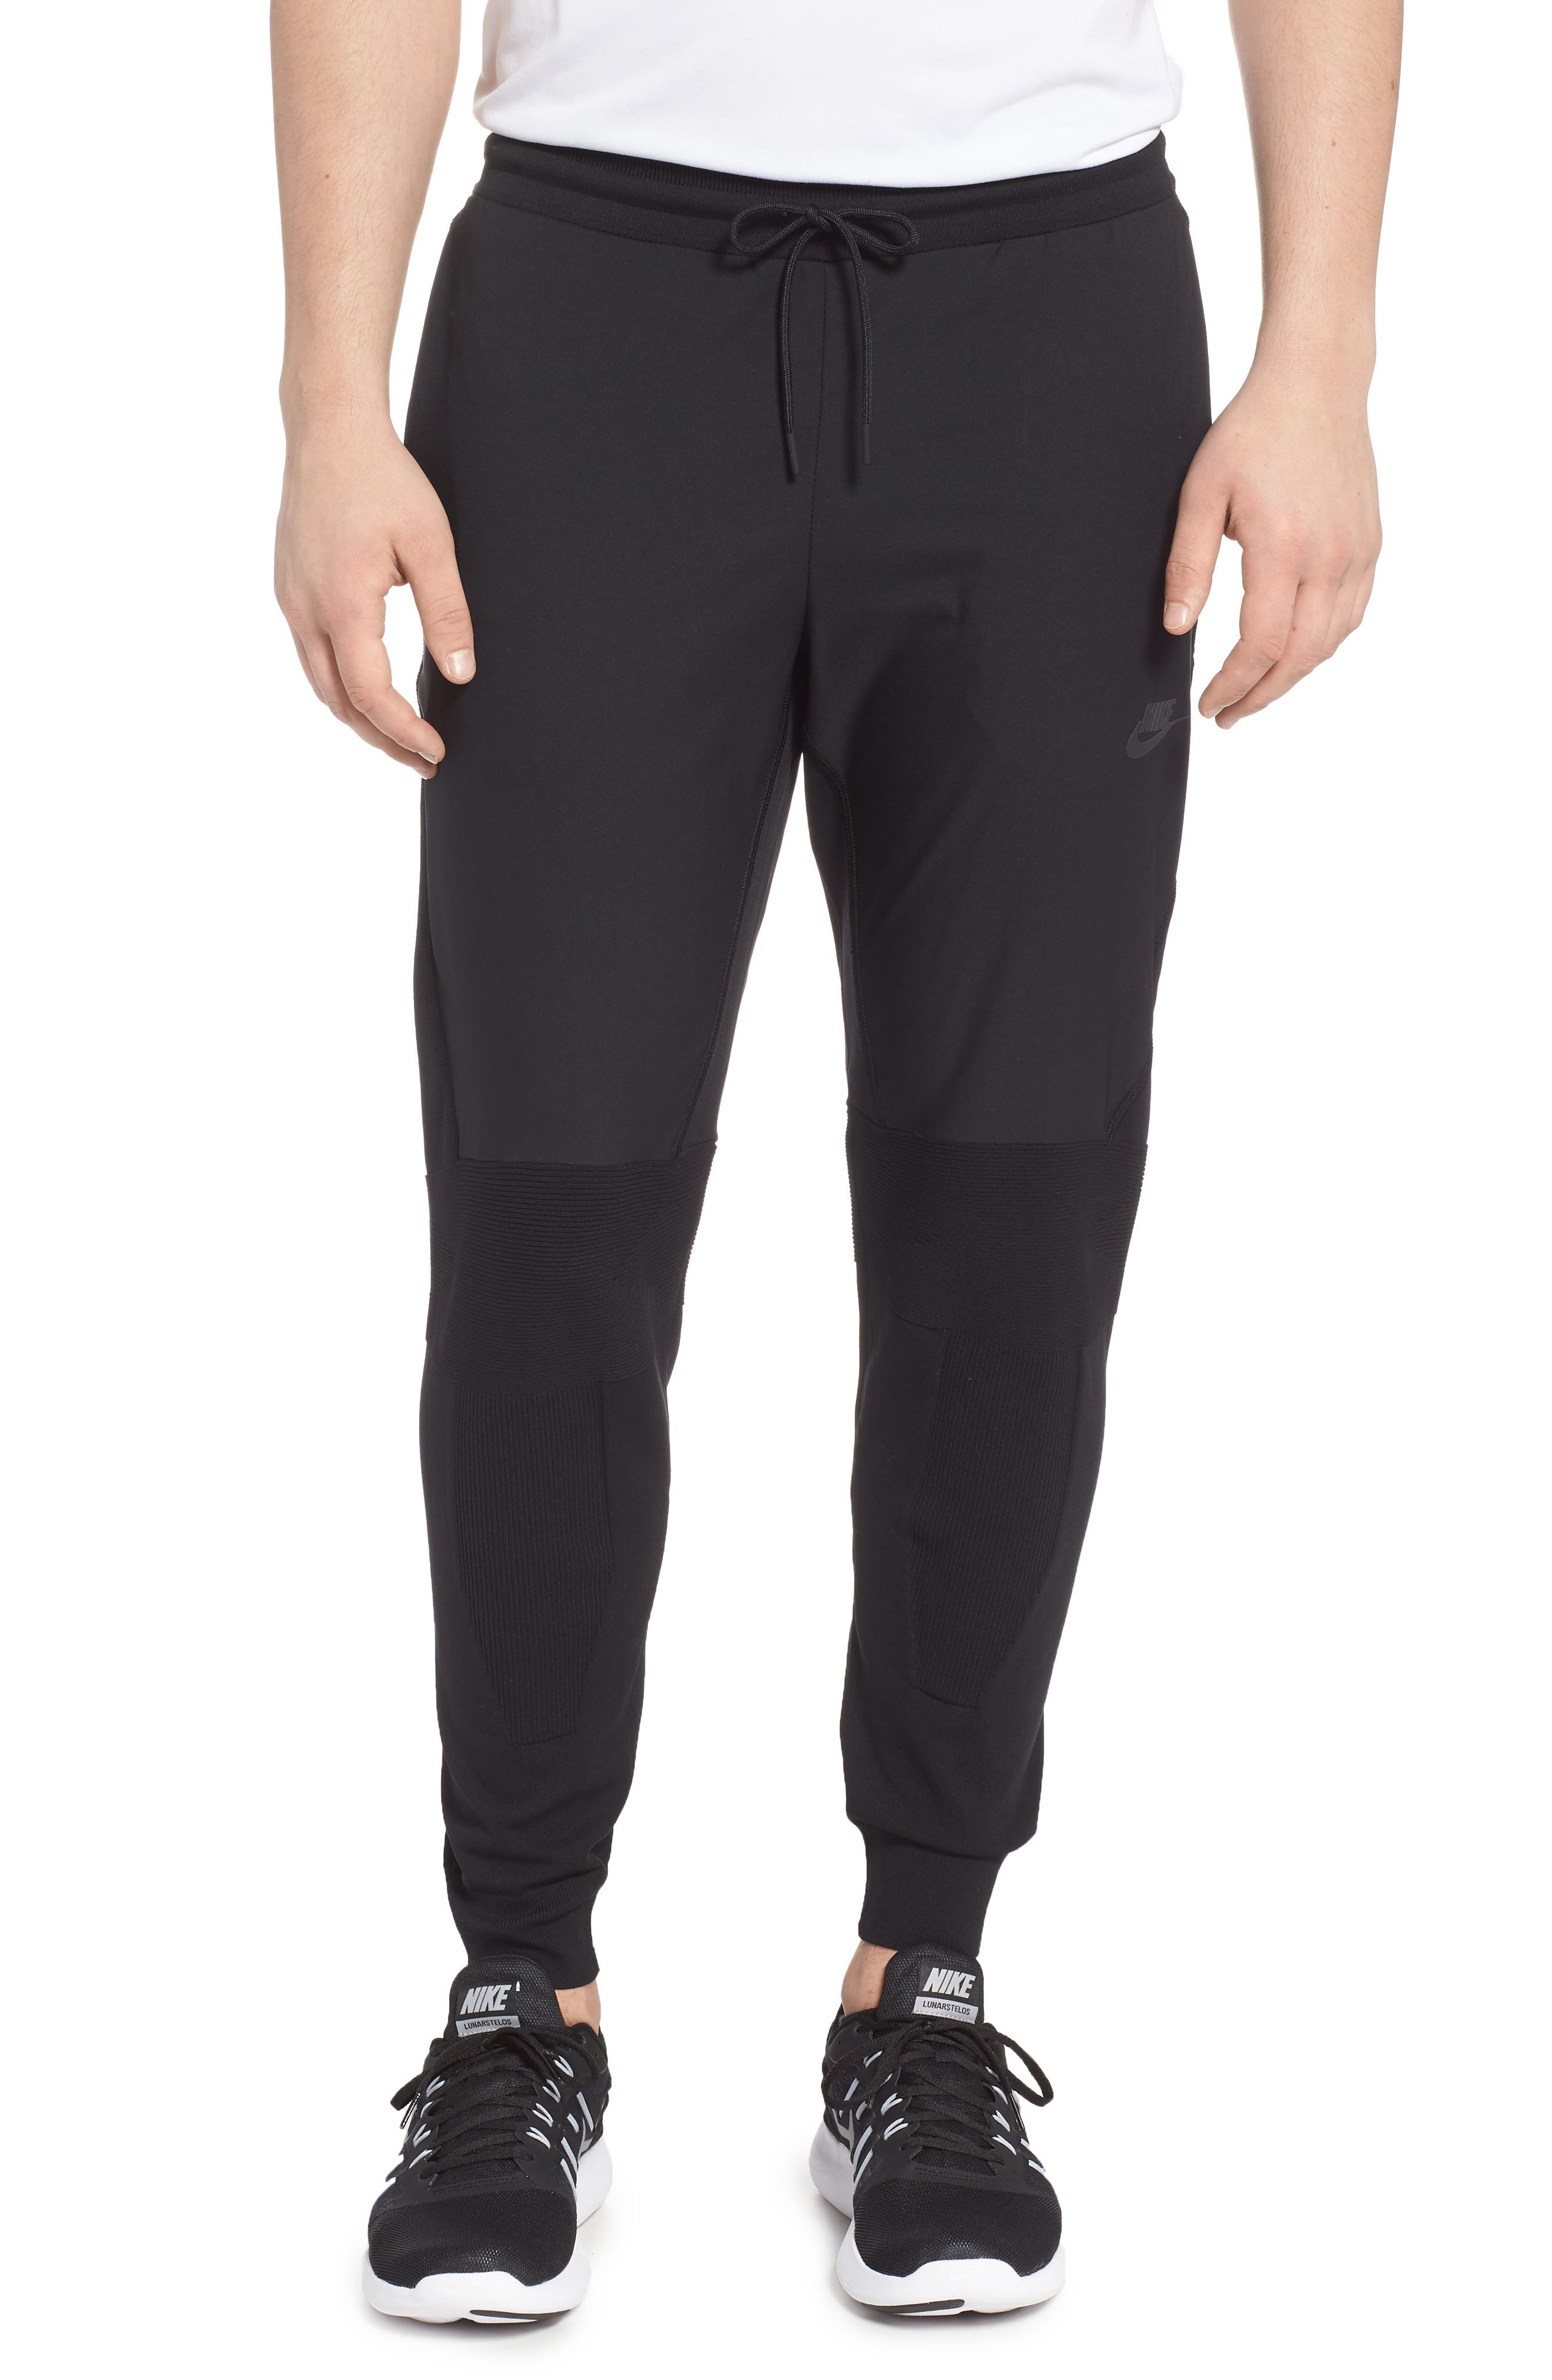 NSW Tech Knit Jogger Pants,                         Main,                         color, 010